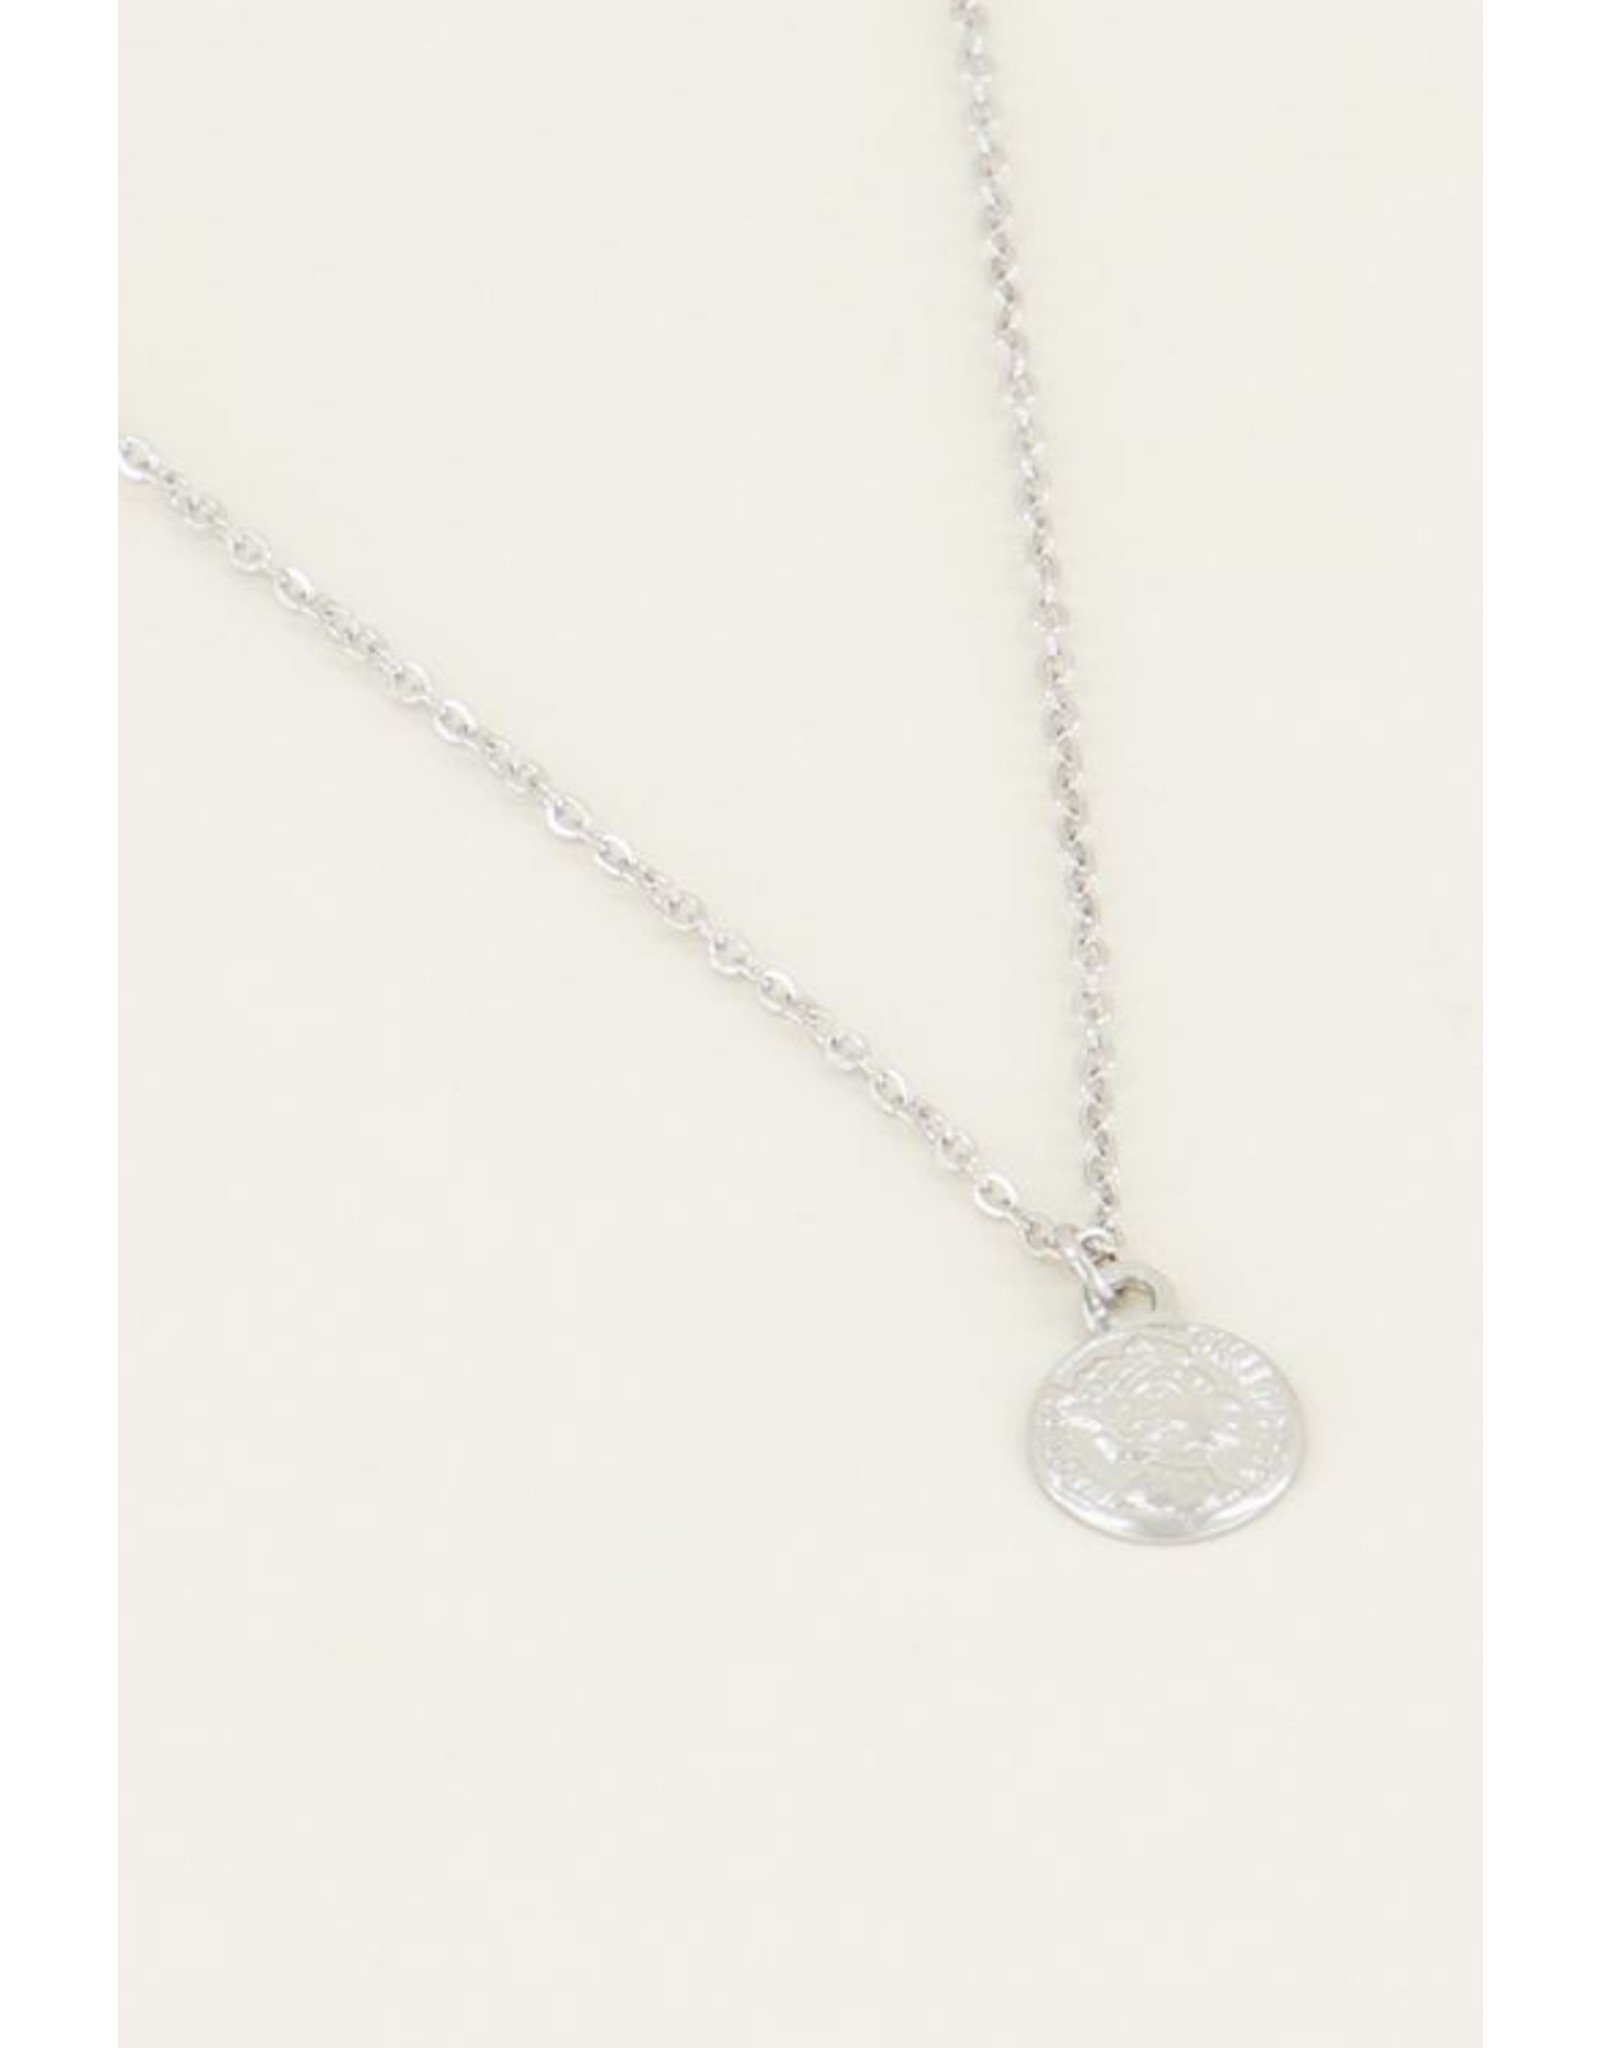 Ketting Muntje Zilver